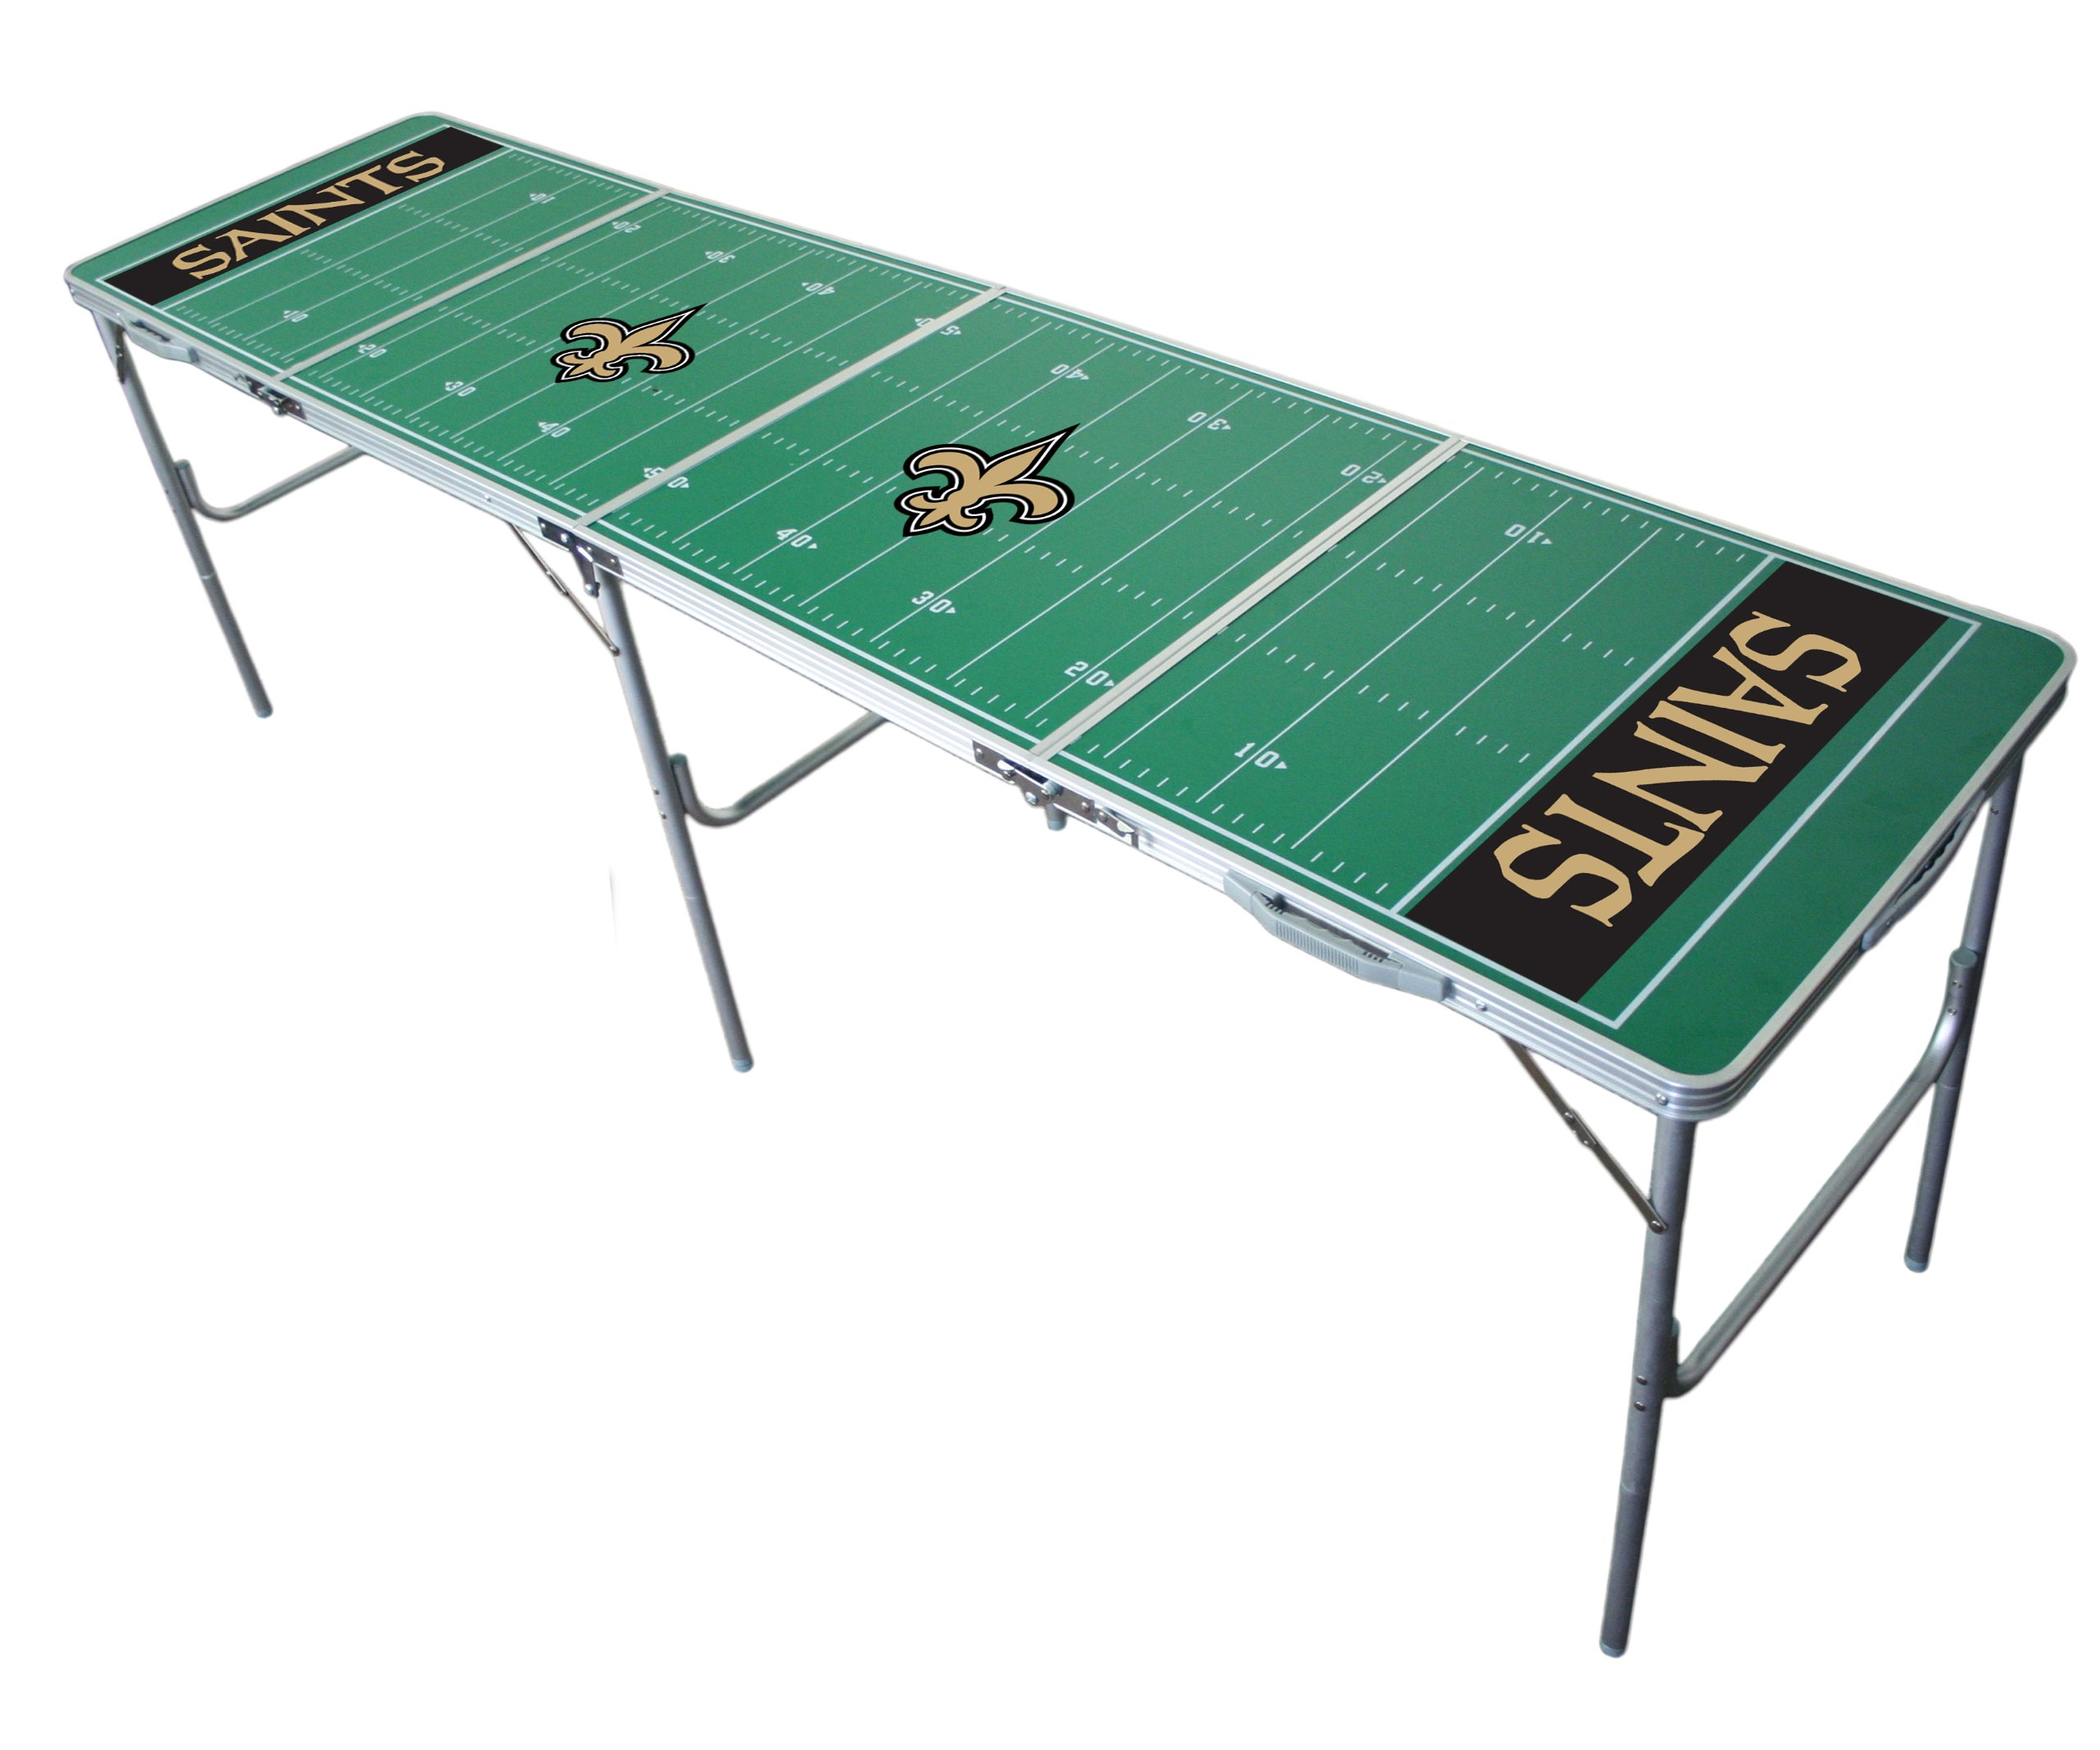 New Orleans Saints 2x8 Tailgate Table by Wild Sports by Wild Sports